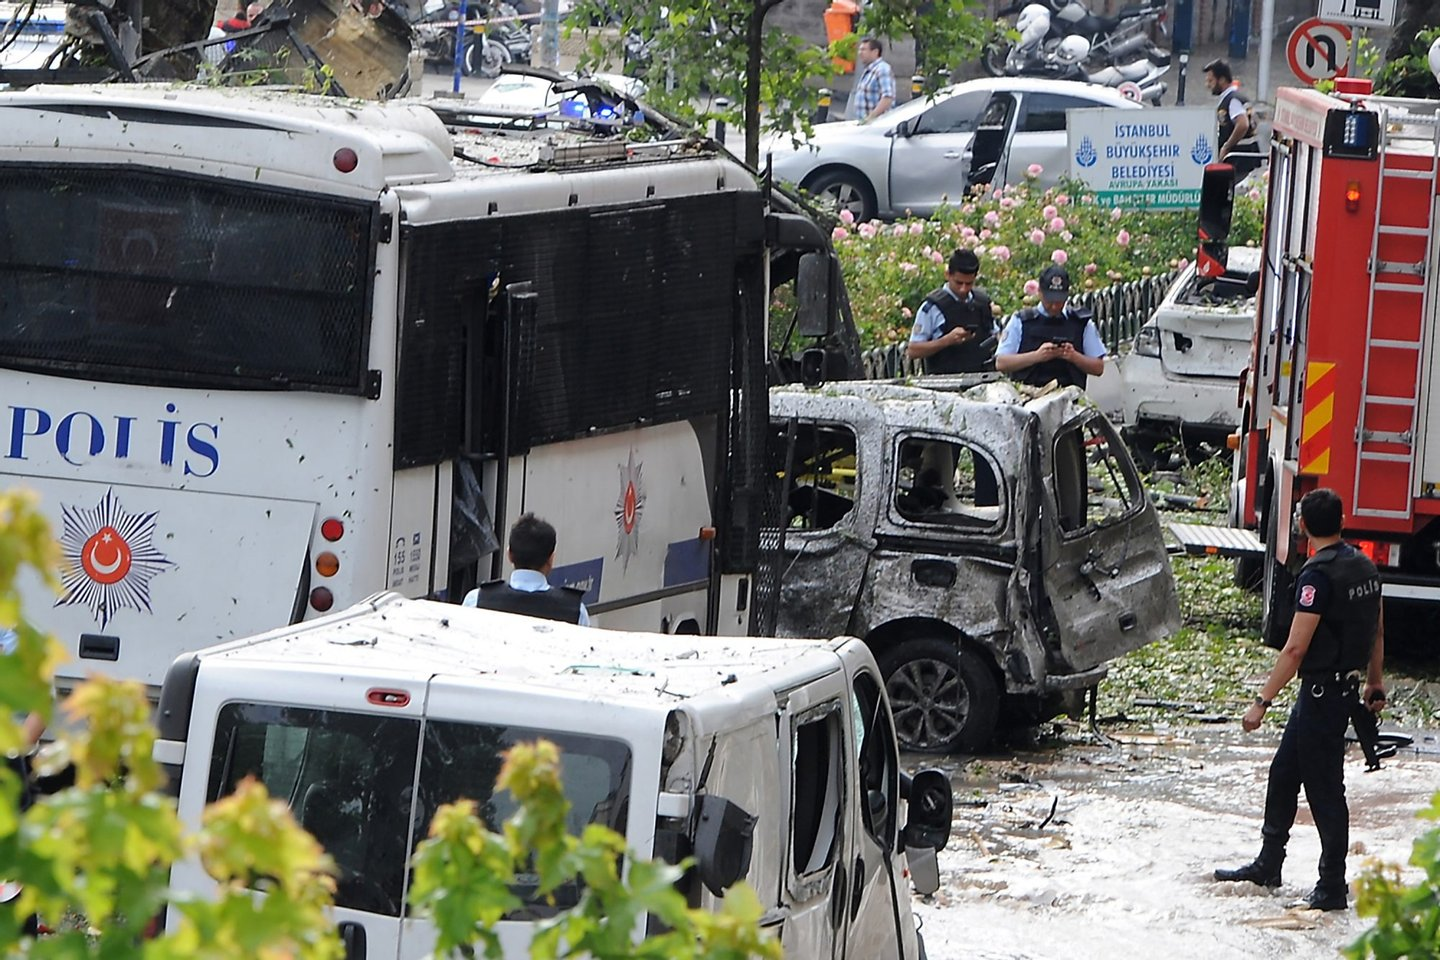 ALTERNATIVE CROP Police officers and rescuers inspect the site of a bomb attack that targeted a police bus in the Vezneciler district of Istanbul on June 7, 2016. A bomb attack targeted Turkish police in a central Istanbul district on June 7, 2016, leaving several people wounded, the state-run TRT television reported. / AFP / DOGAN NEWS AGENCY / STRINGER / Turkey OUT (Photo credit should read STRINGER/AFP/Getty Images)